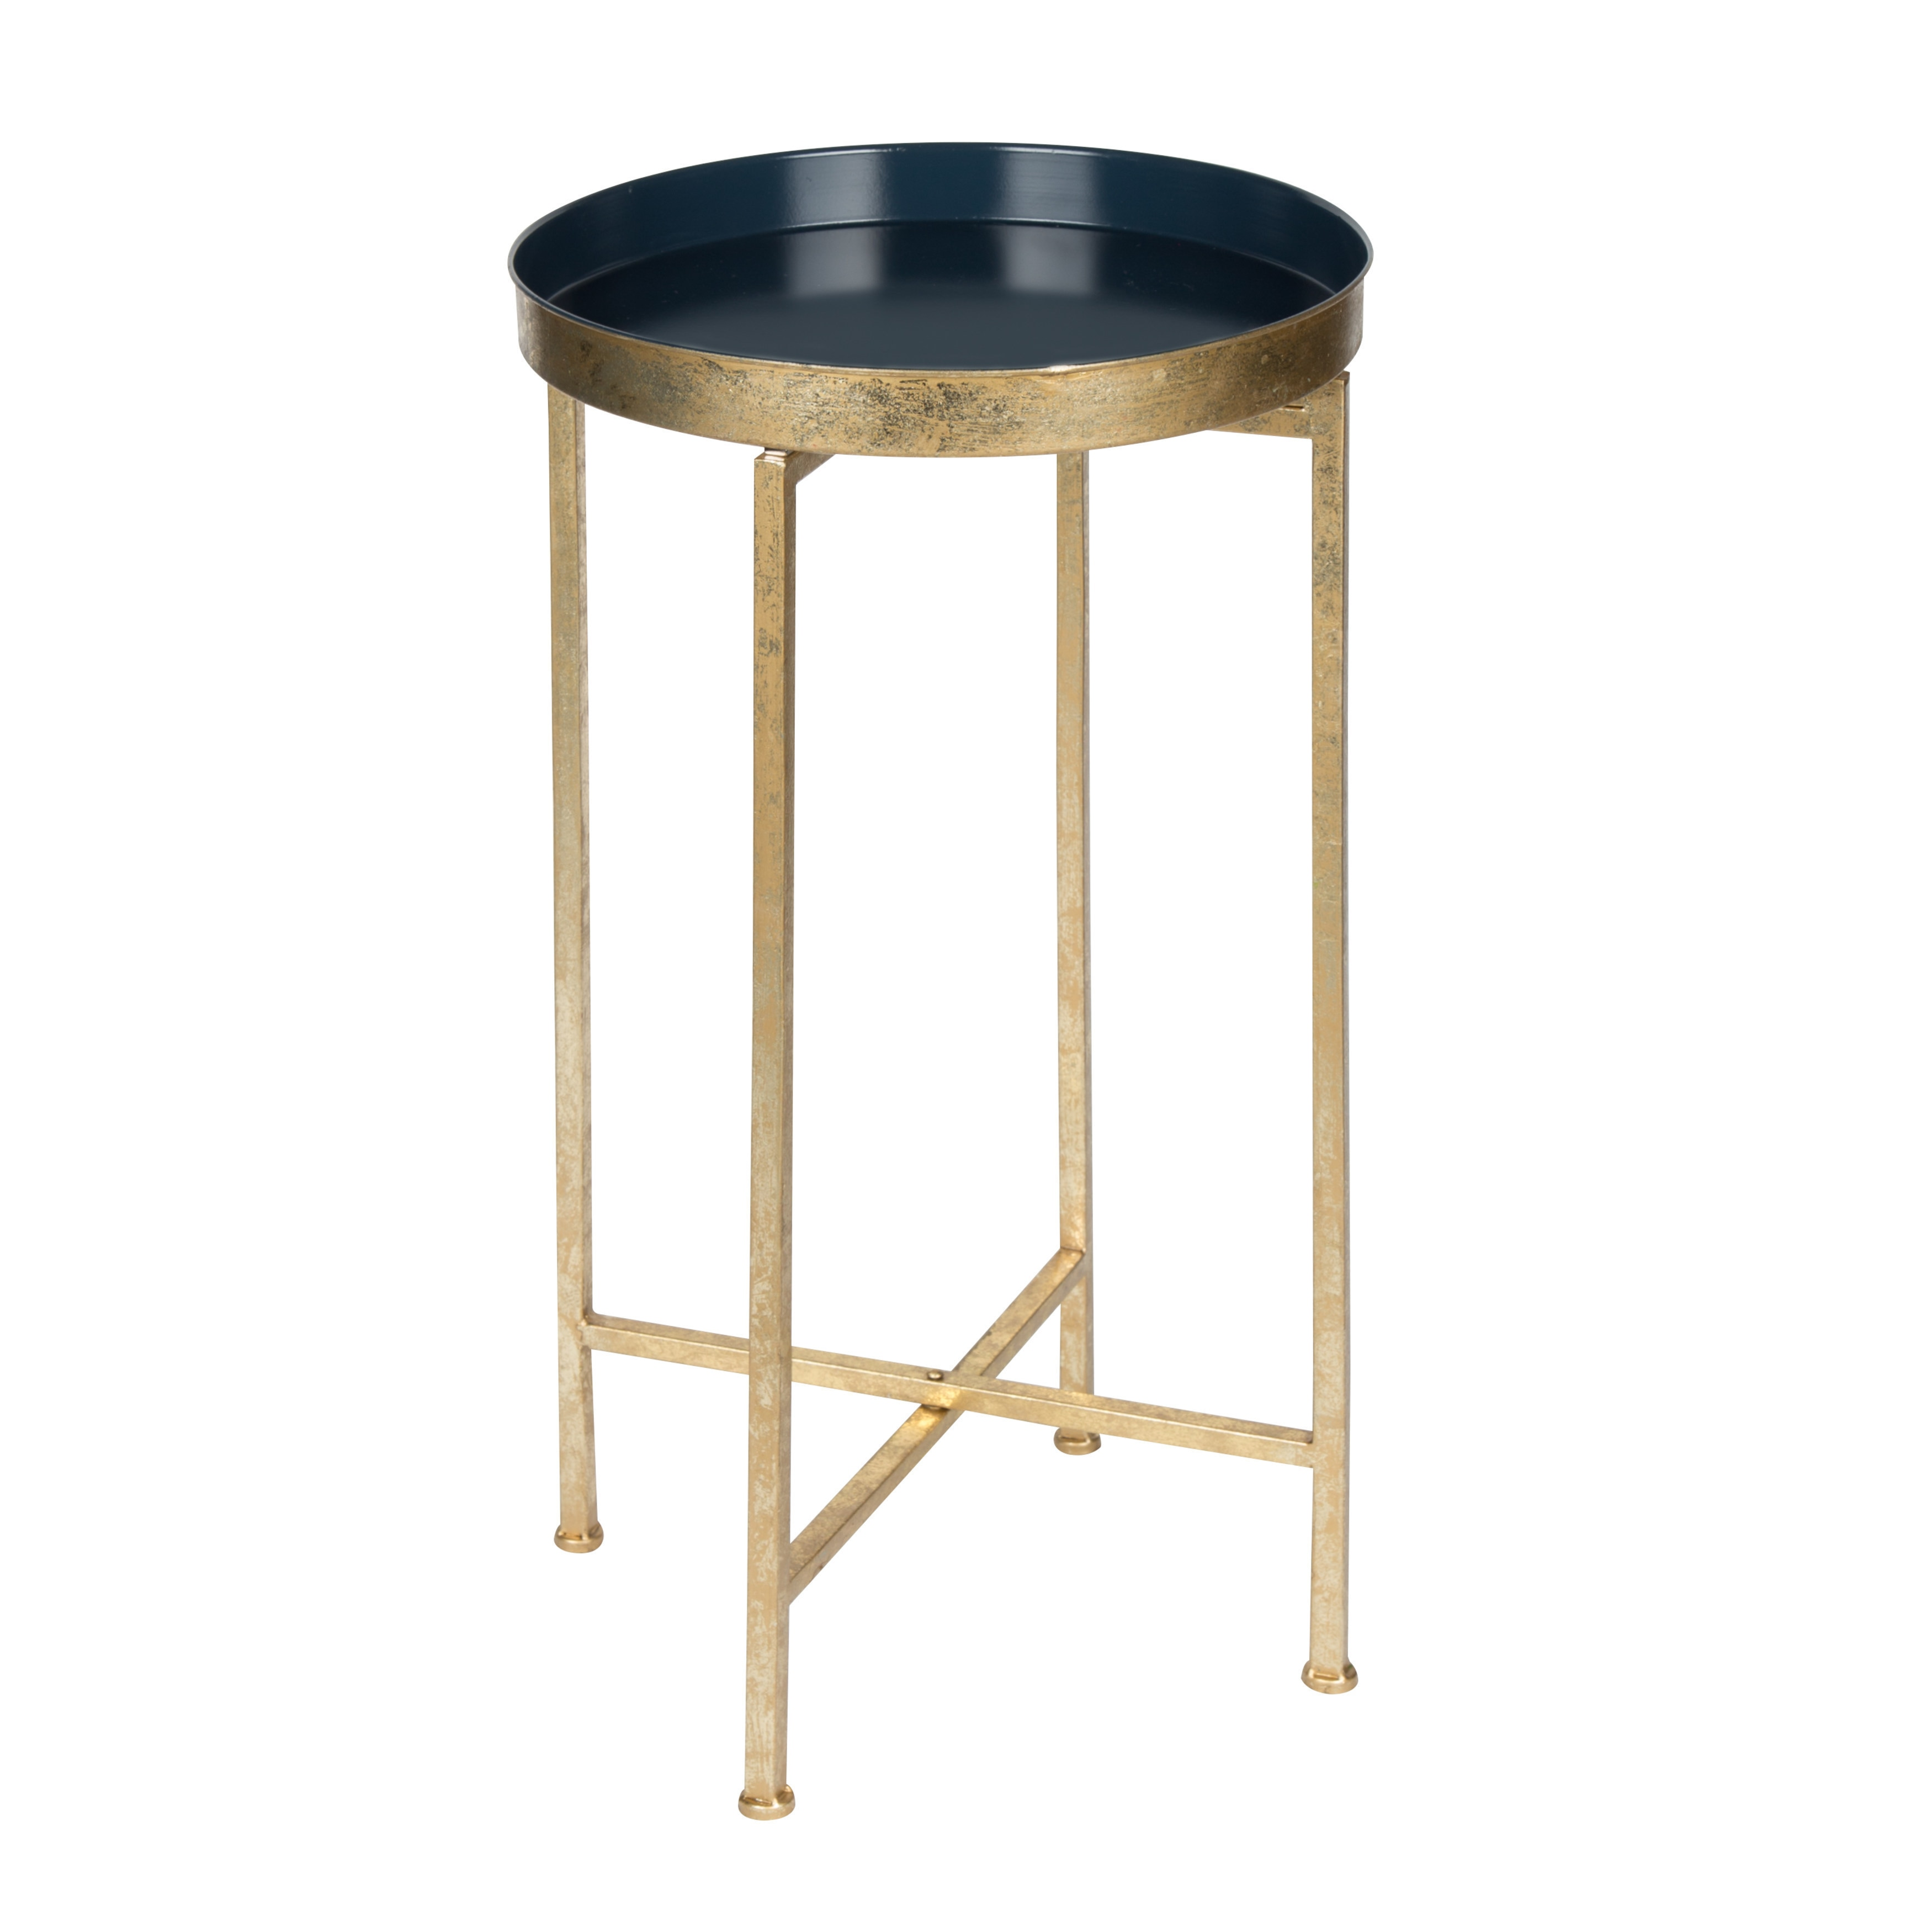 porch den alamo heights zambrano round metal foldable tray accent table grey blue goldtone finish white nightstand world market lamps acrylic side pier one furniture catalog legs